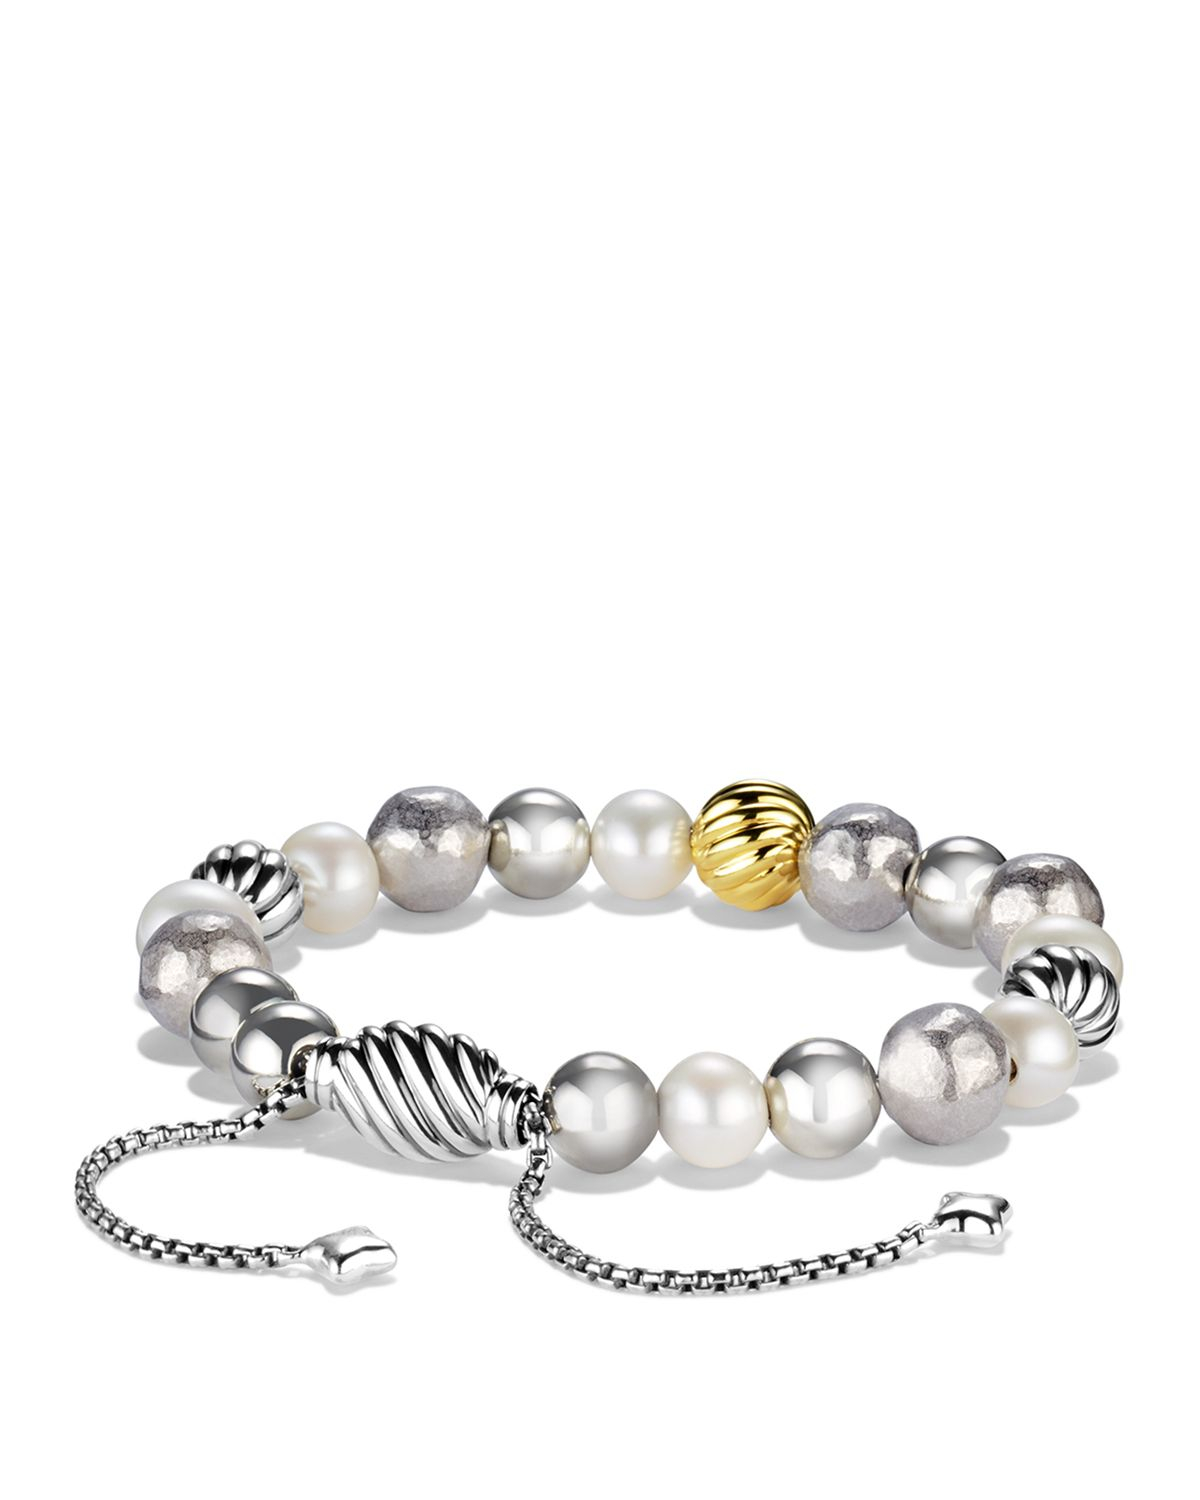 david yurman dy elements bracelet with pearls and gold in